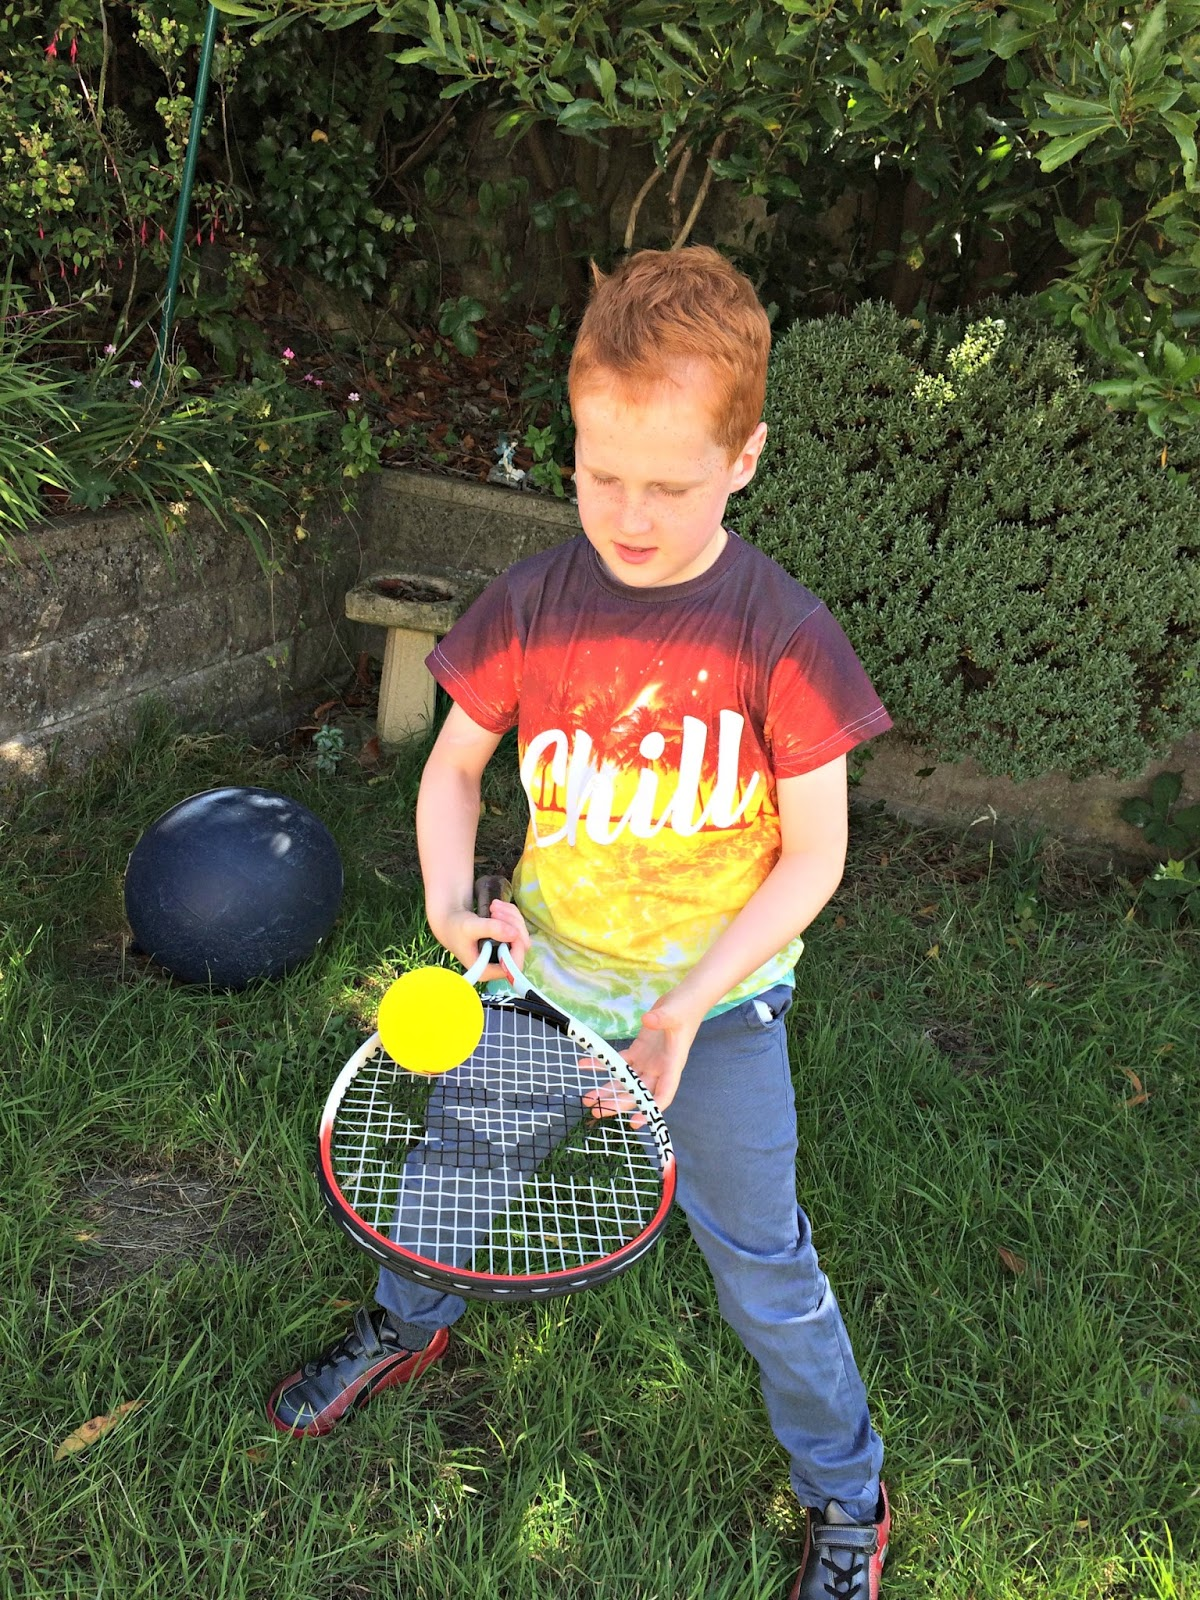 Ieuan balancing a tennis ball on a tennis racquet